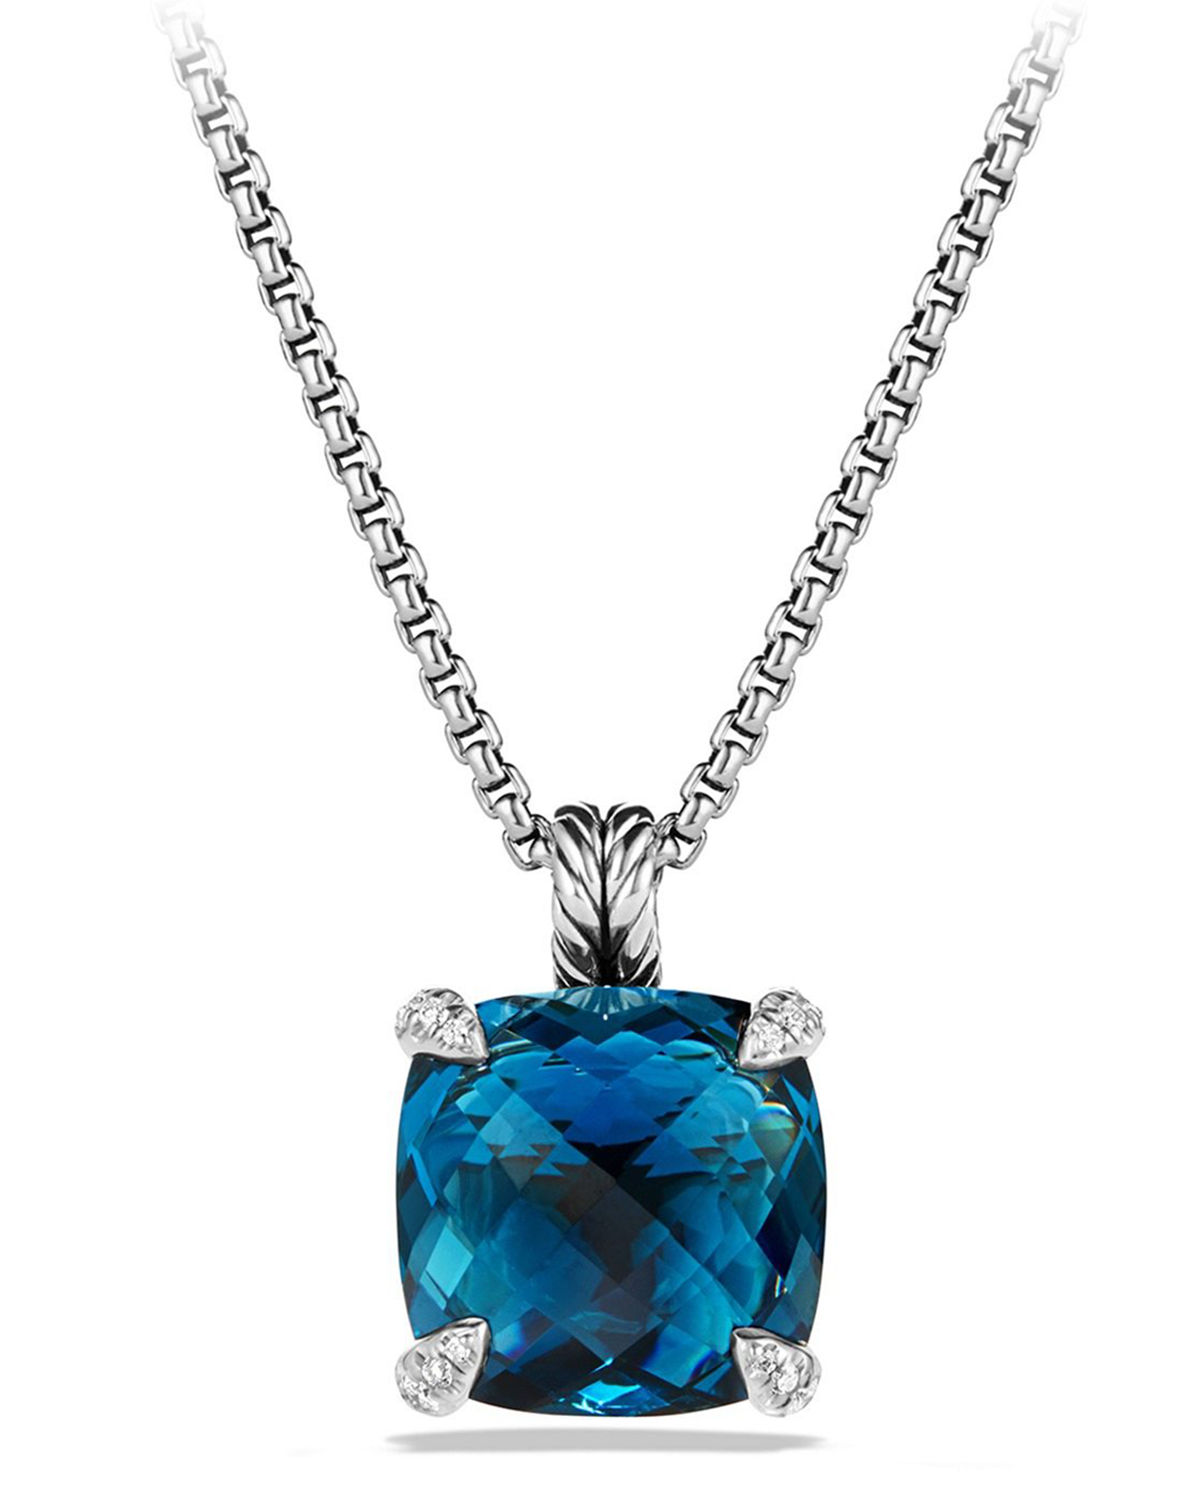 David Yurman Accessories 14MM CHÂTELAINE PENDANT